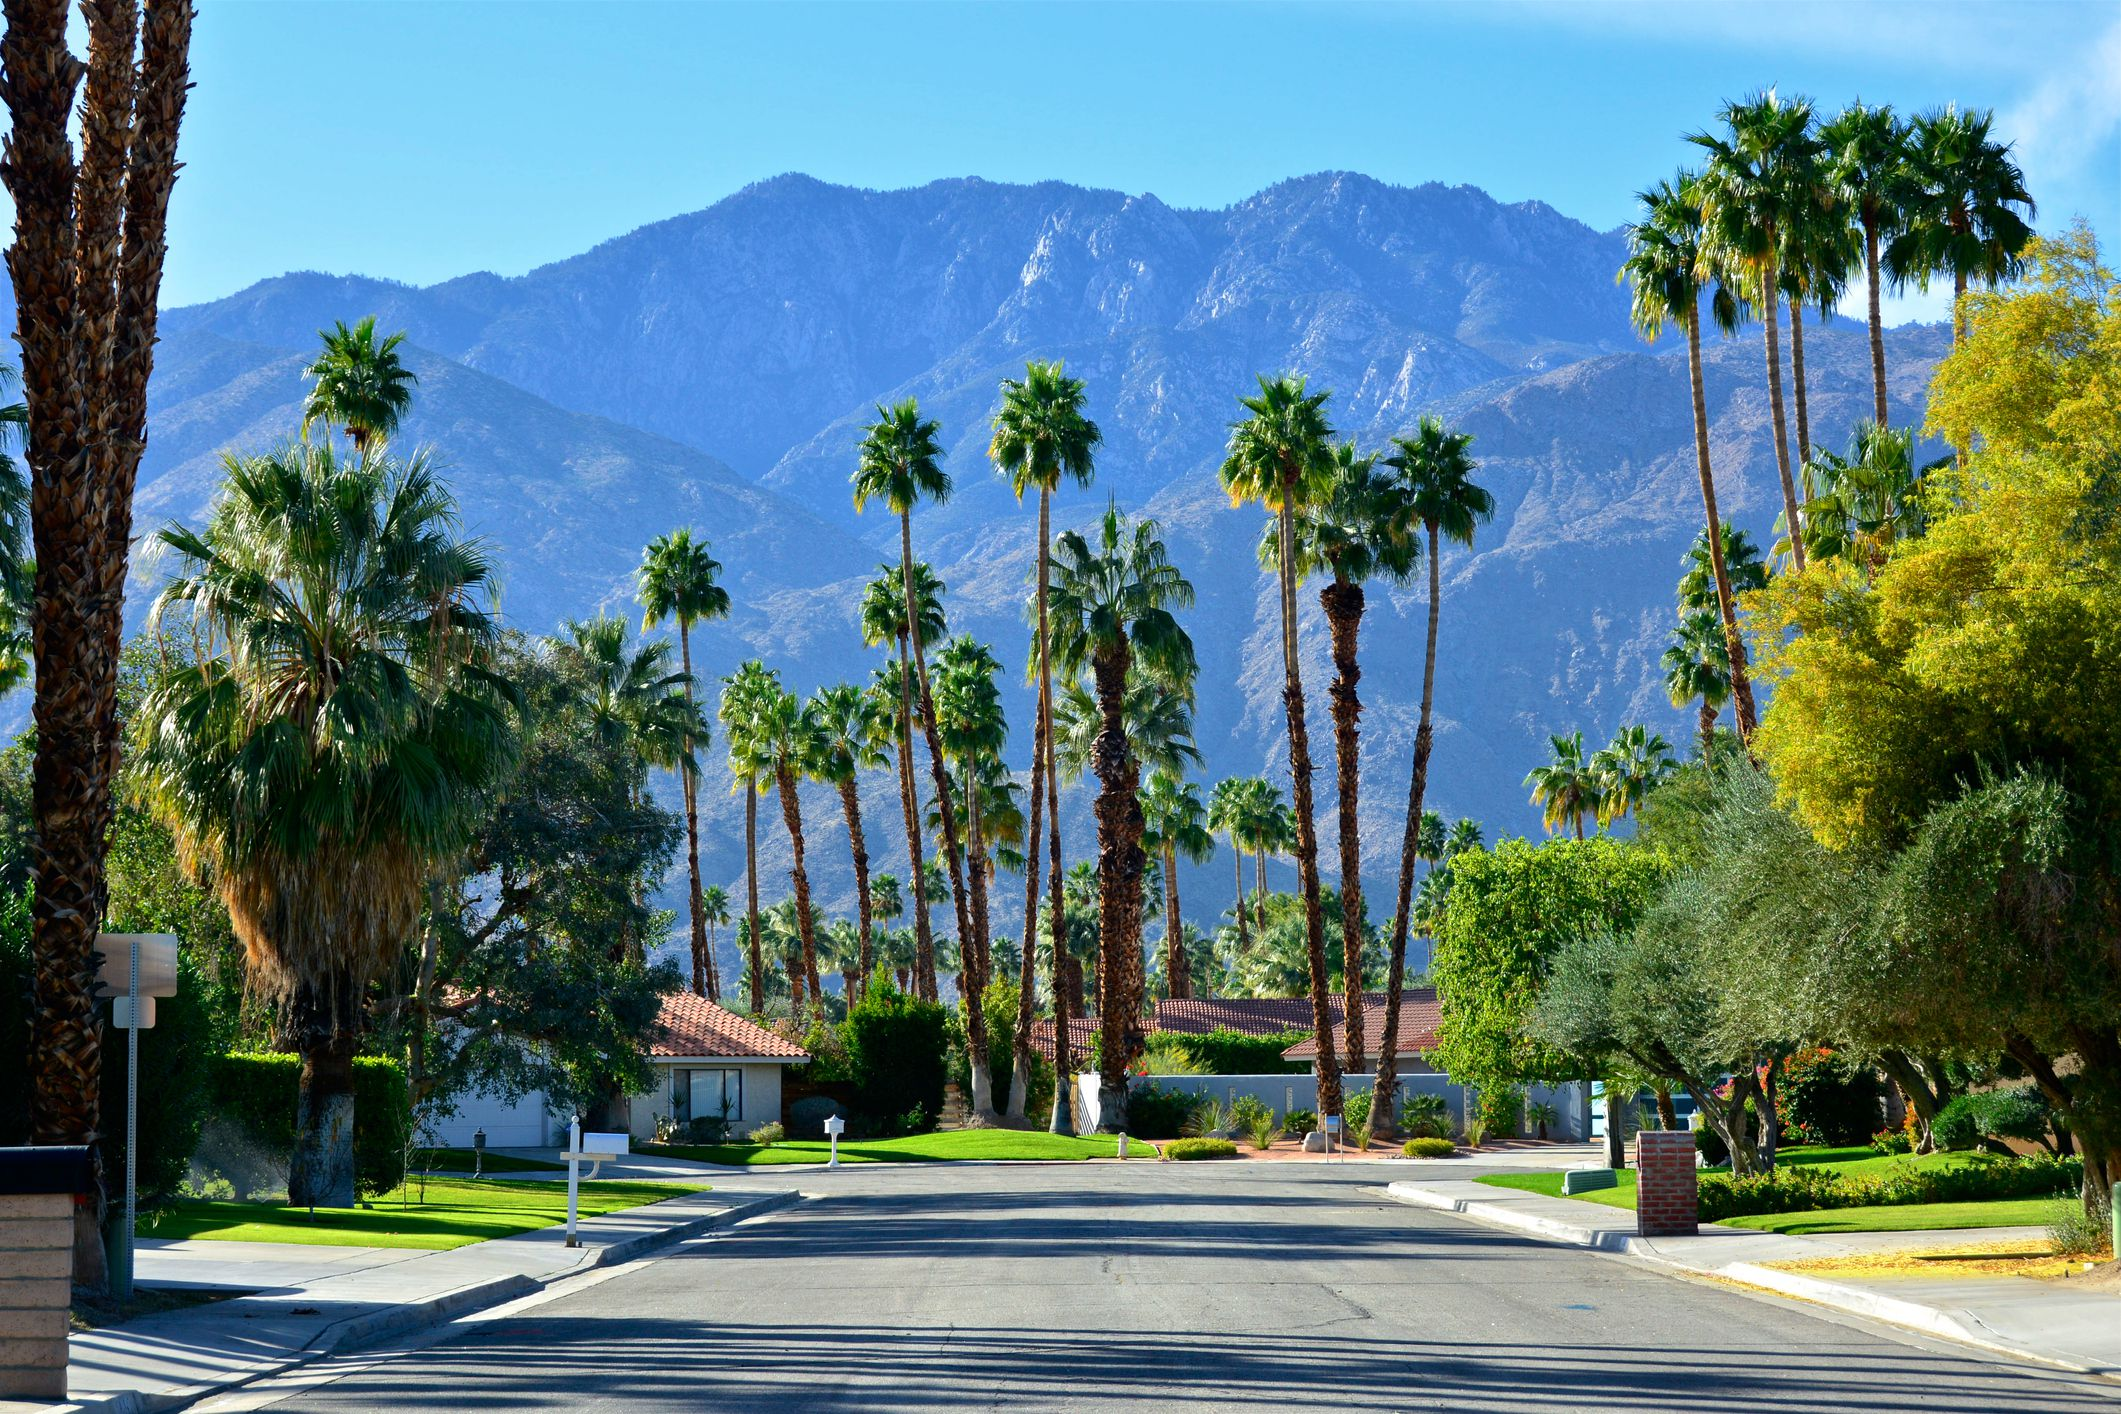 Mid-century modern homes, street scene in Palm Springs, Southern California, USA